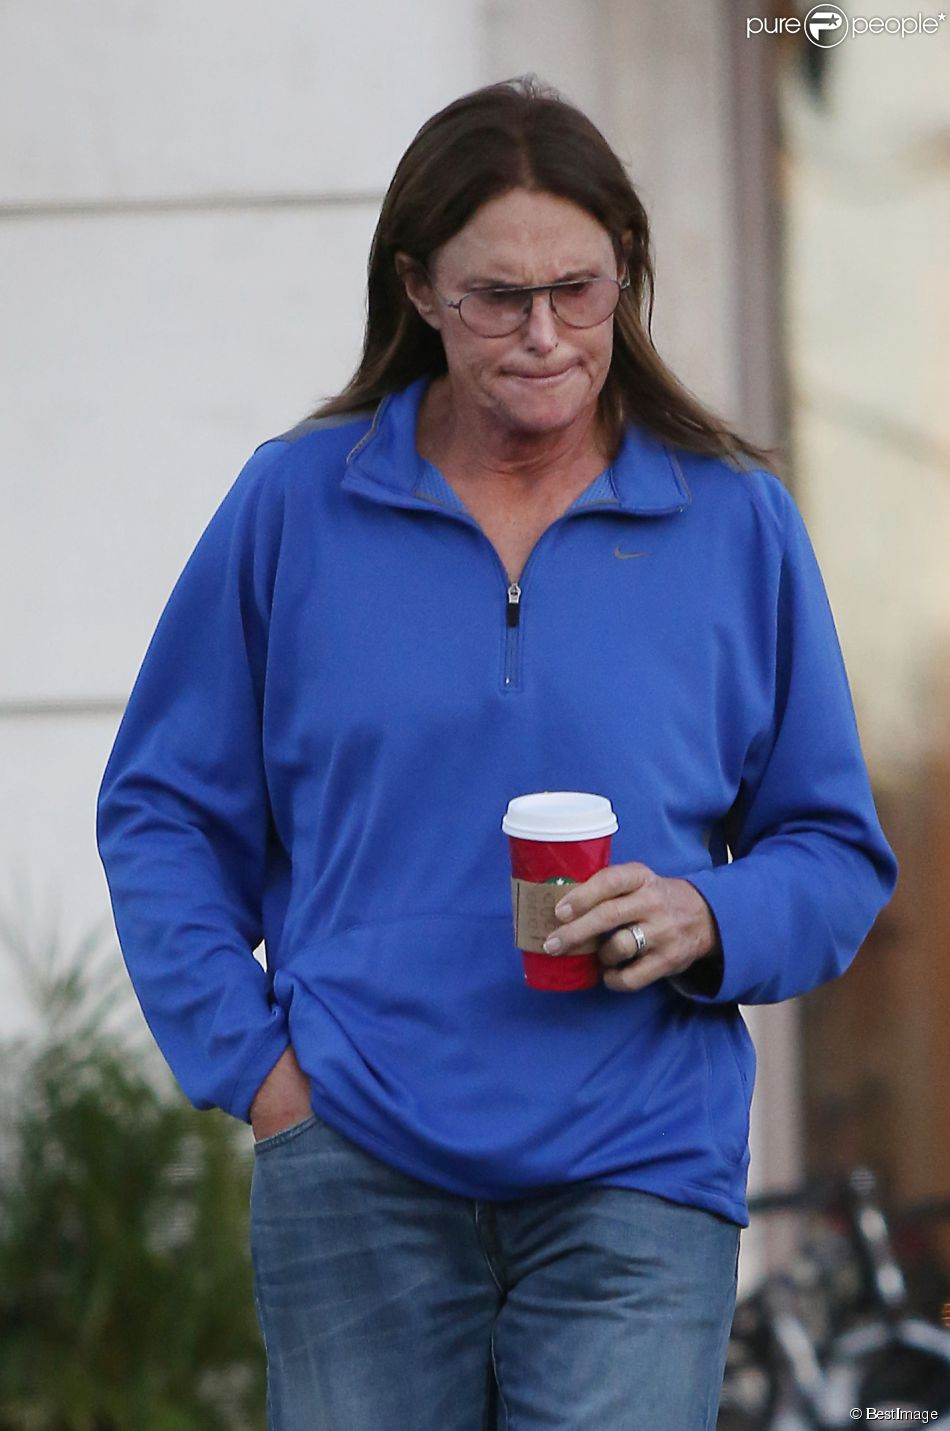 bruce jenner transgenre le soutien de patricia arquette 39 39 madame jenner 39 39. Black Bedroom Furniture Sets. Home Design Ideas